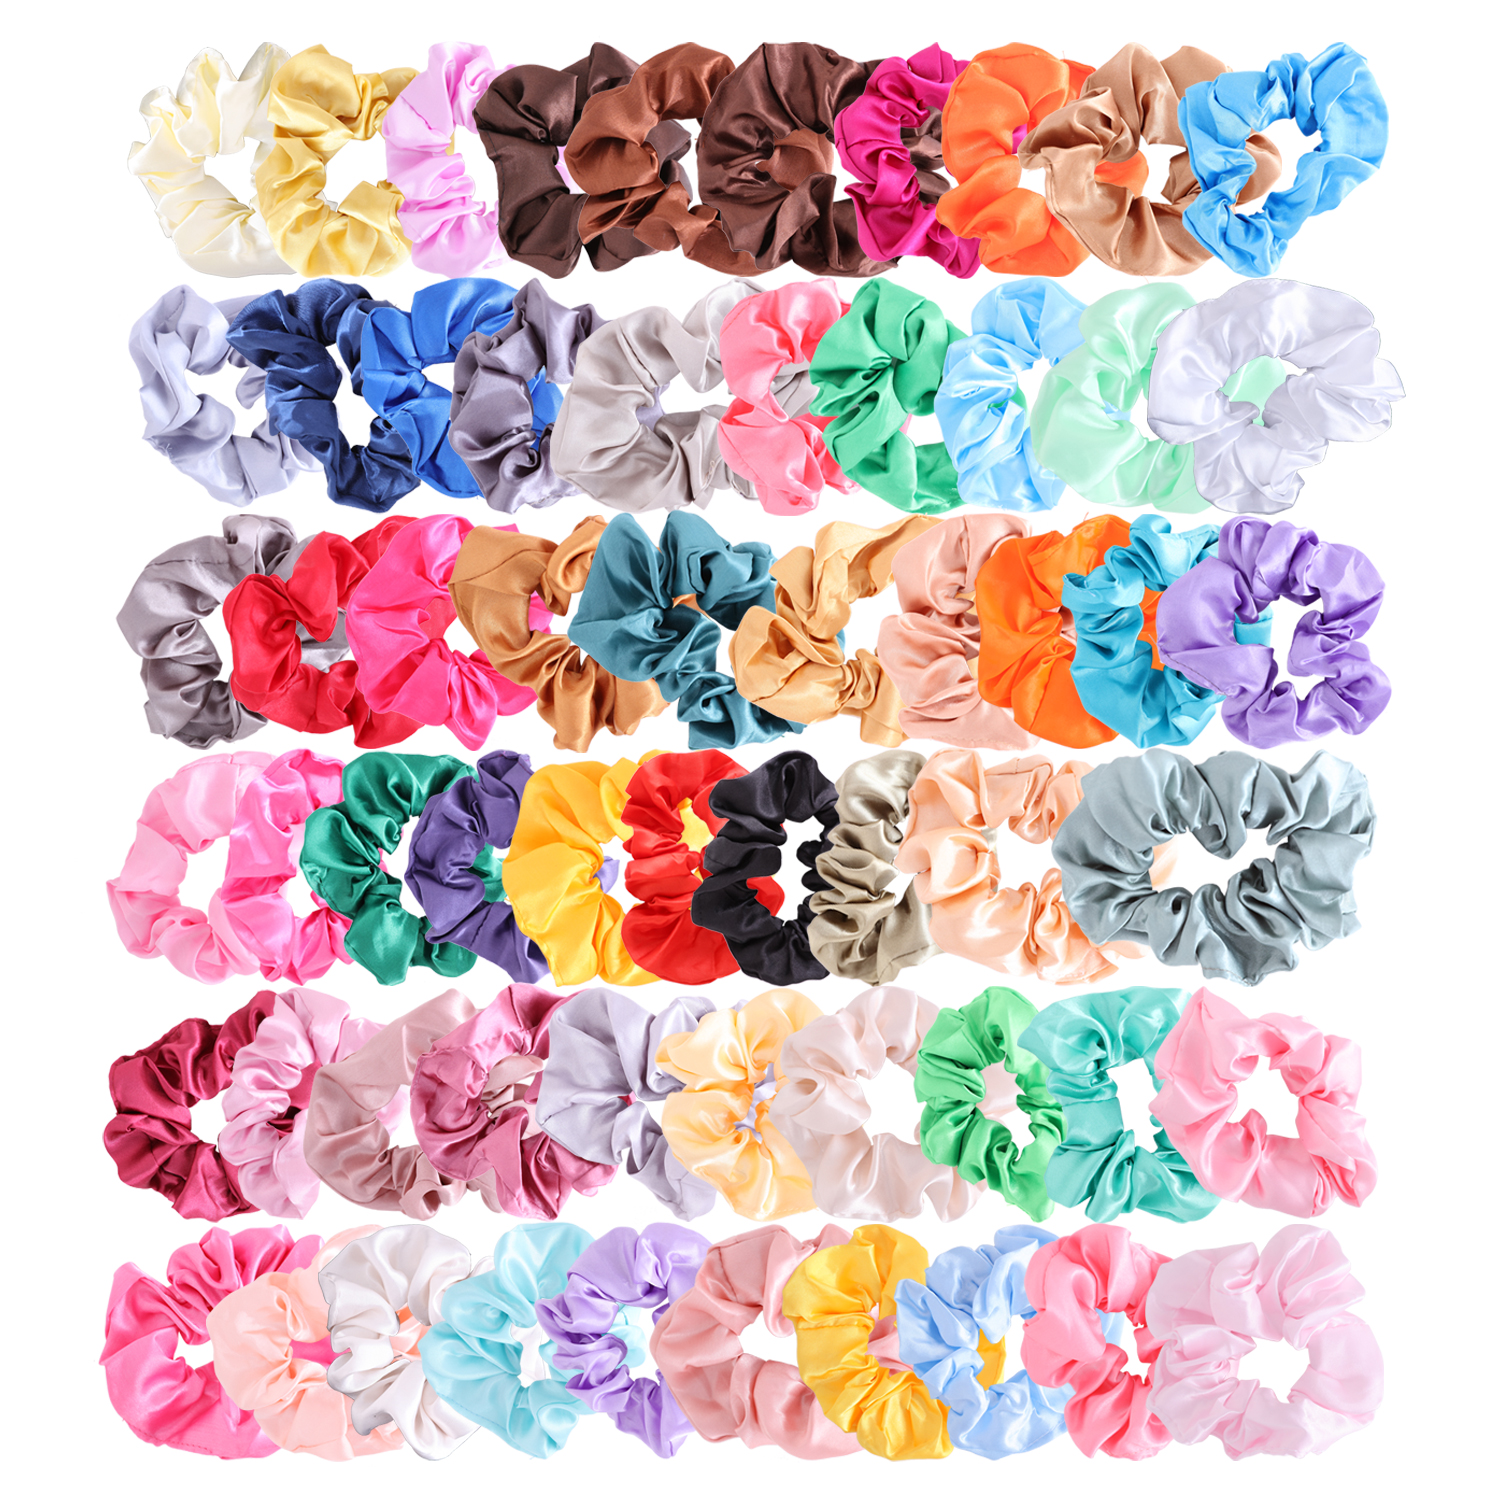 New 60pcs Baby Girls Elastic Pony Tail Holders Hairband Soft Hair Band Bobble